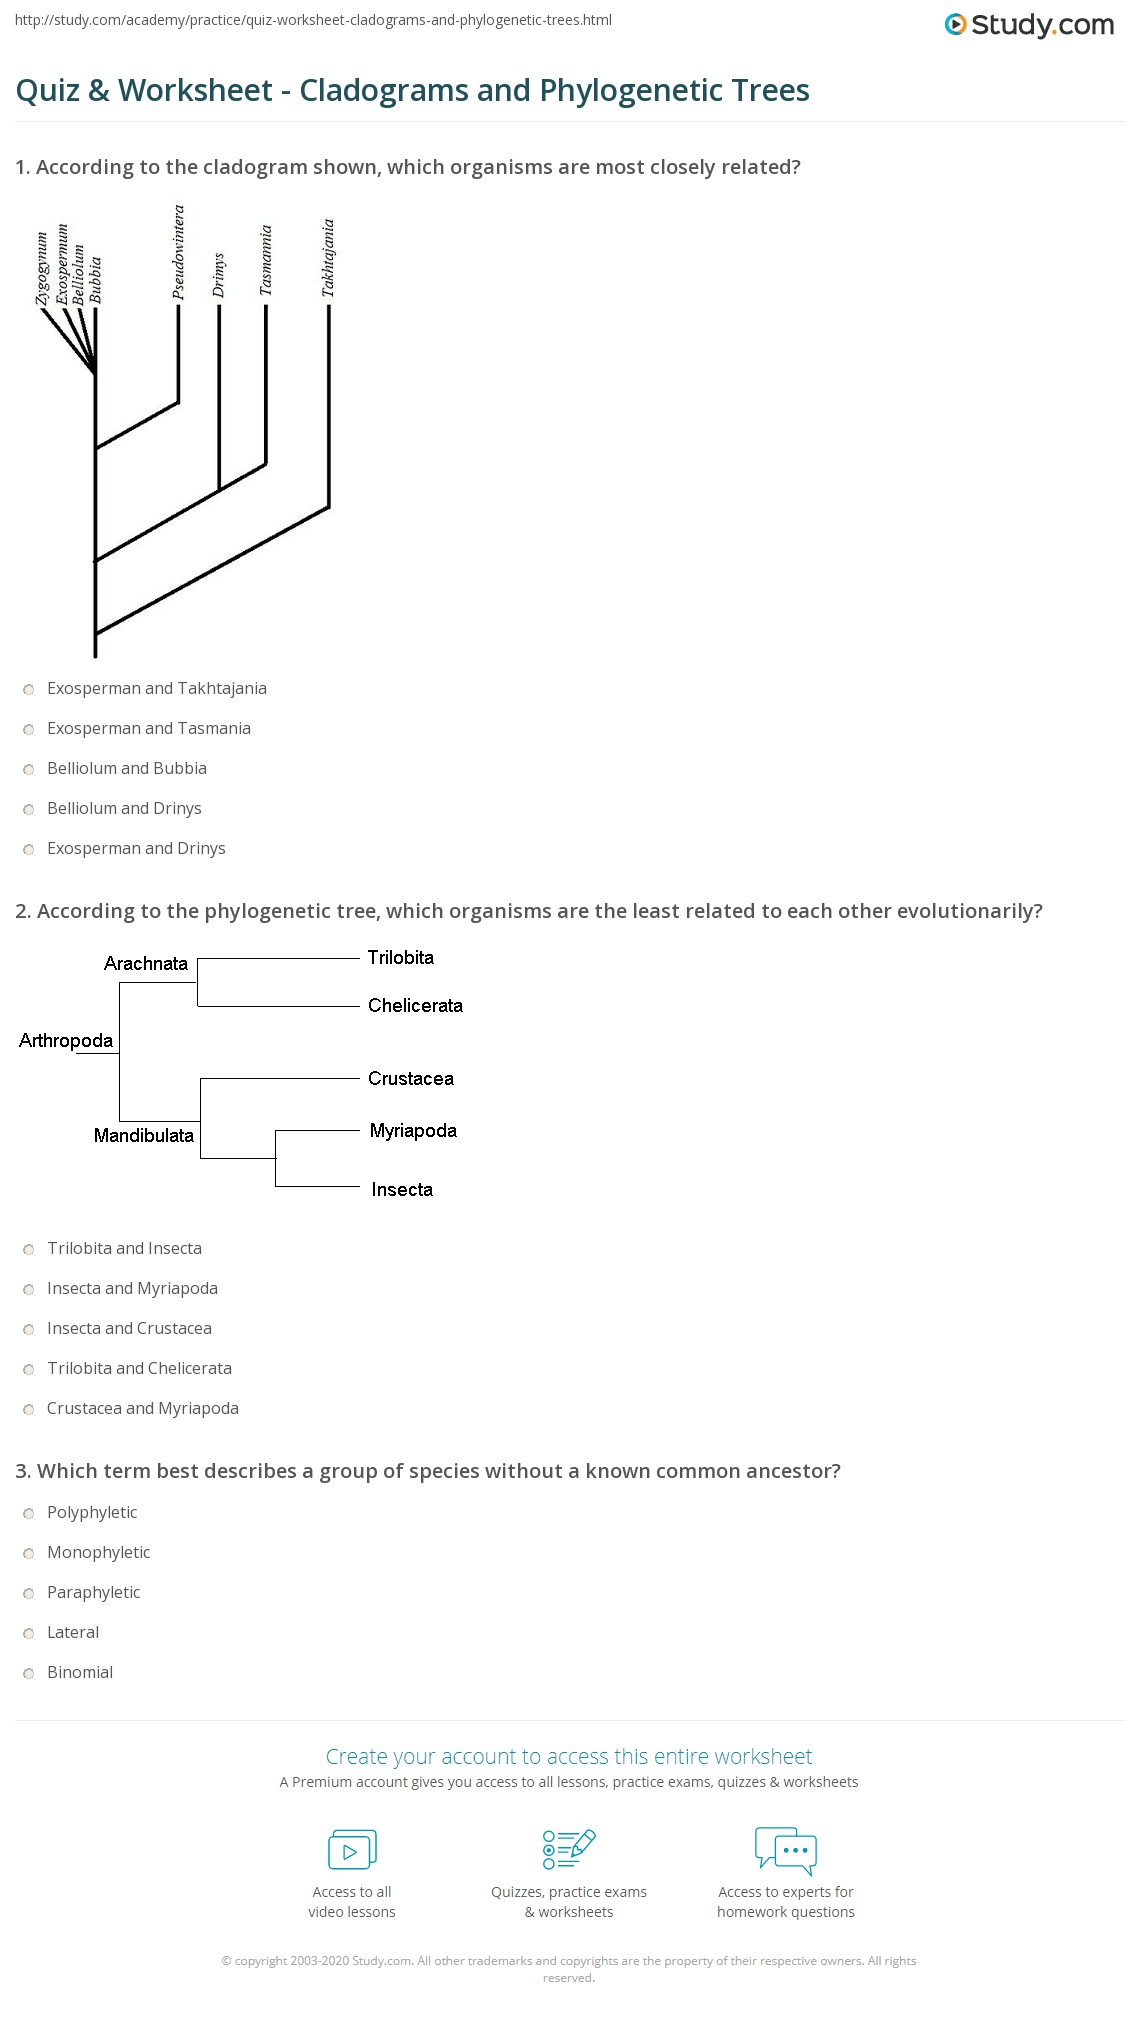 Quiz & Worksheet - Cladograms and Phylogenetic Trees | Study.com